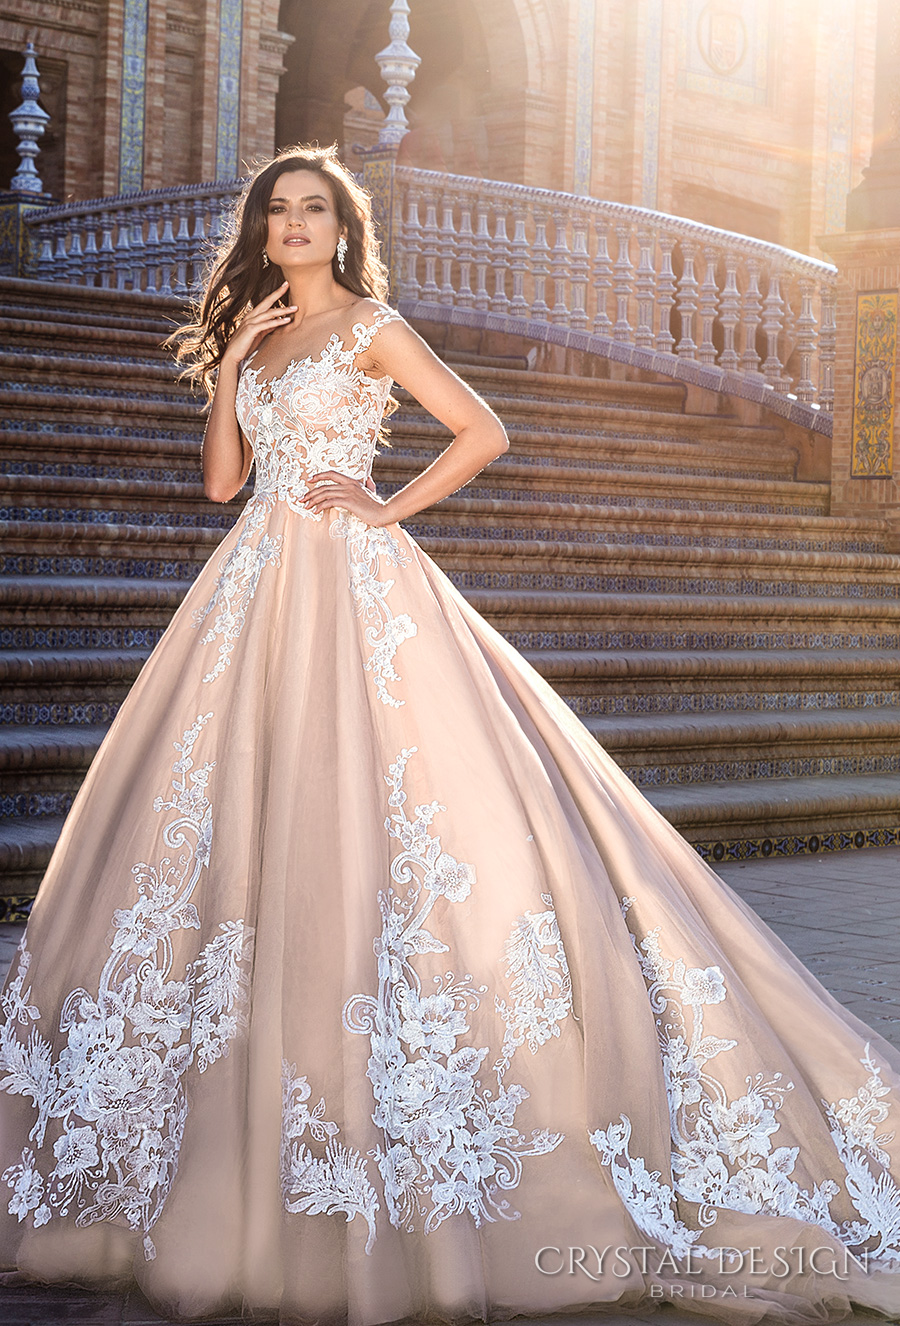 crystal design 2017 bridal illusion off the shoulder cap sleeves sheer boat sweetheart neckline heavily embellished bodice lace blush princess ball gown wedding dress royal train (jill) mv